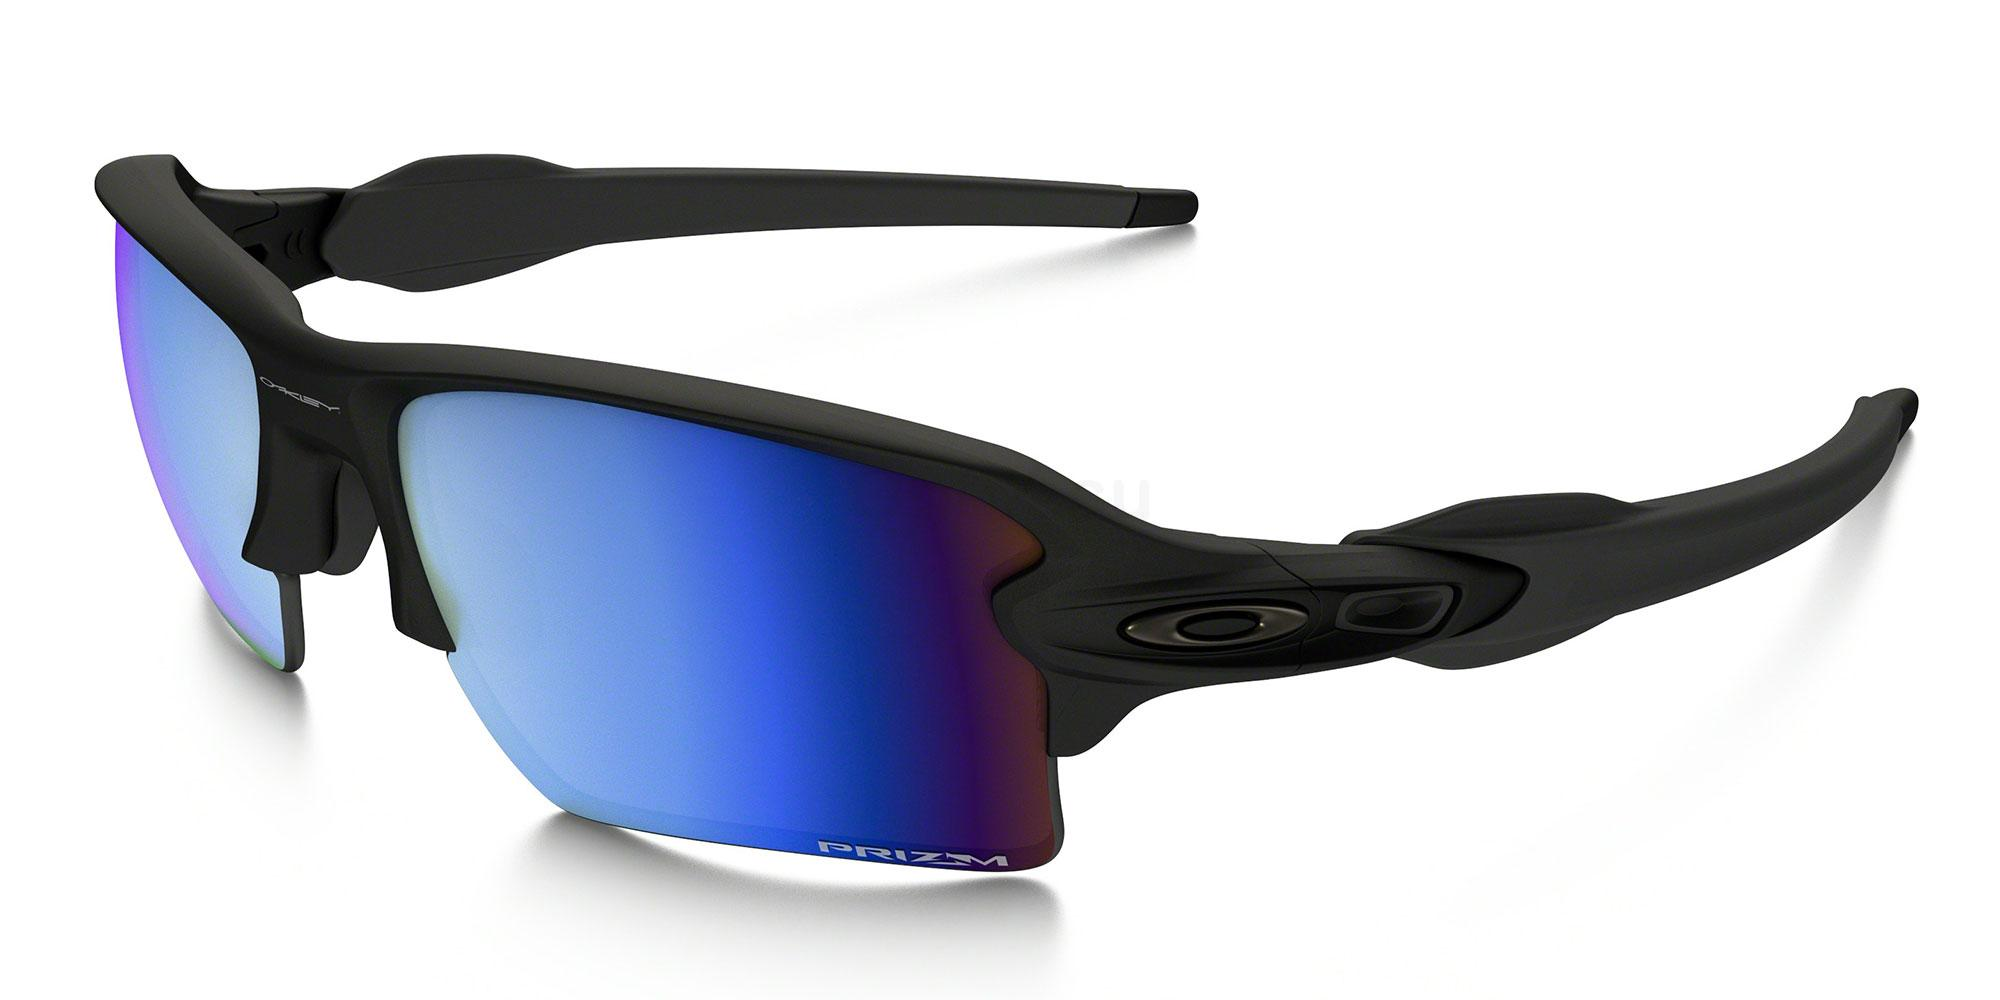 918858 OO9188 POLARIZED FLAK 2.0 XL Sunglasses, Oakley